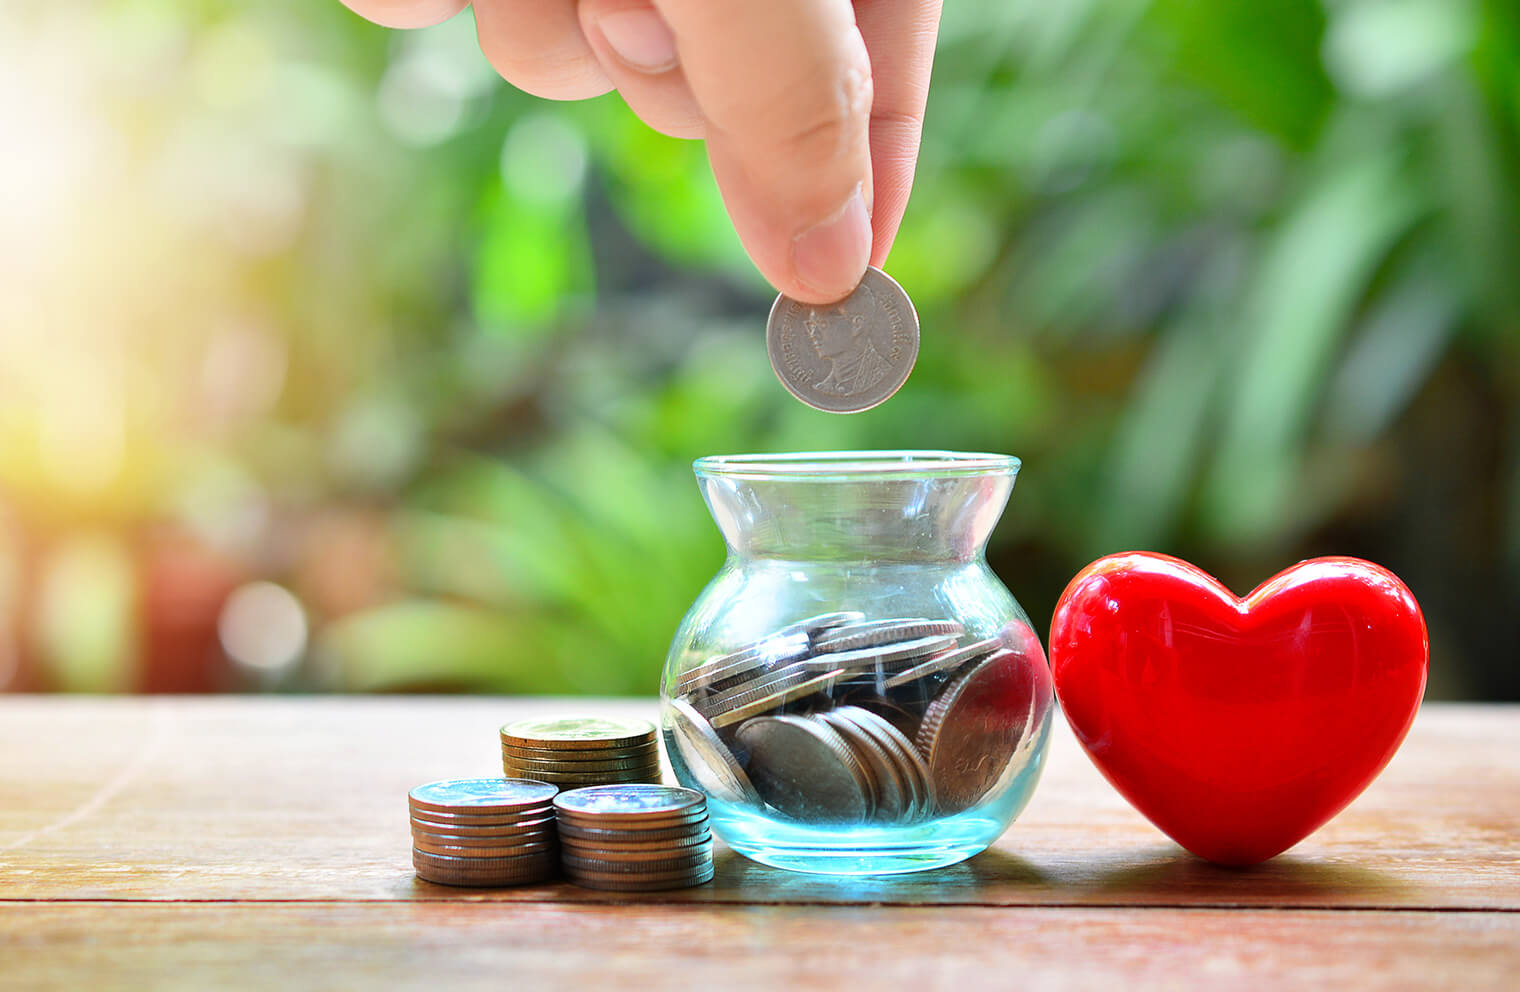 Picture of a person's hand dropping quarters into a tiny glass vase that is next to more quarters to the left and a toy heart to the right.